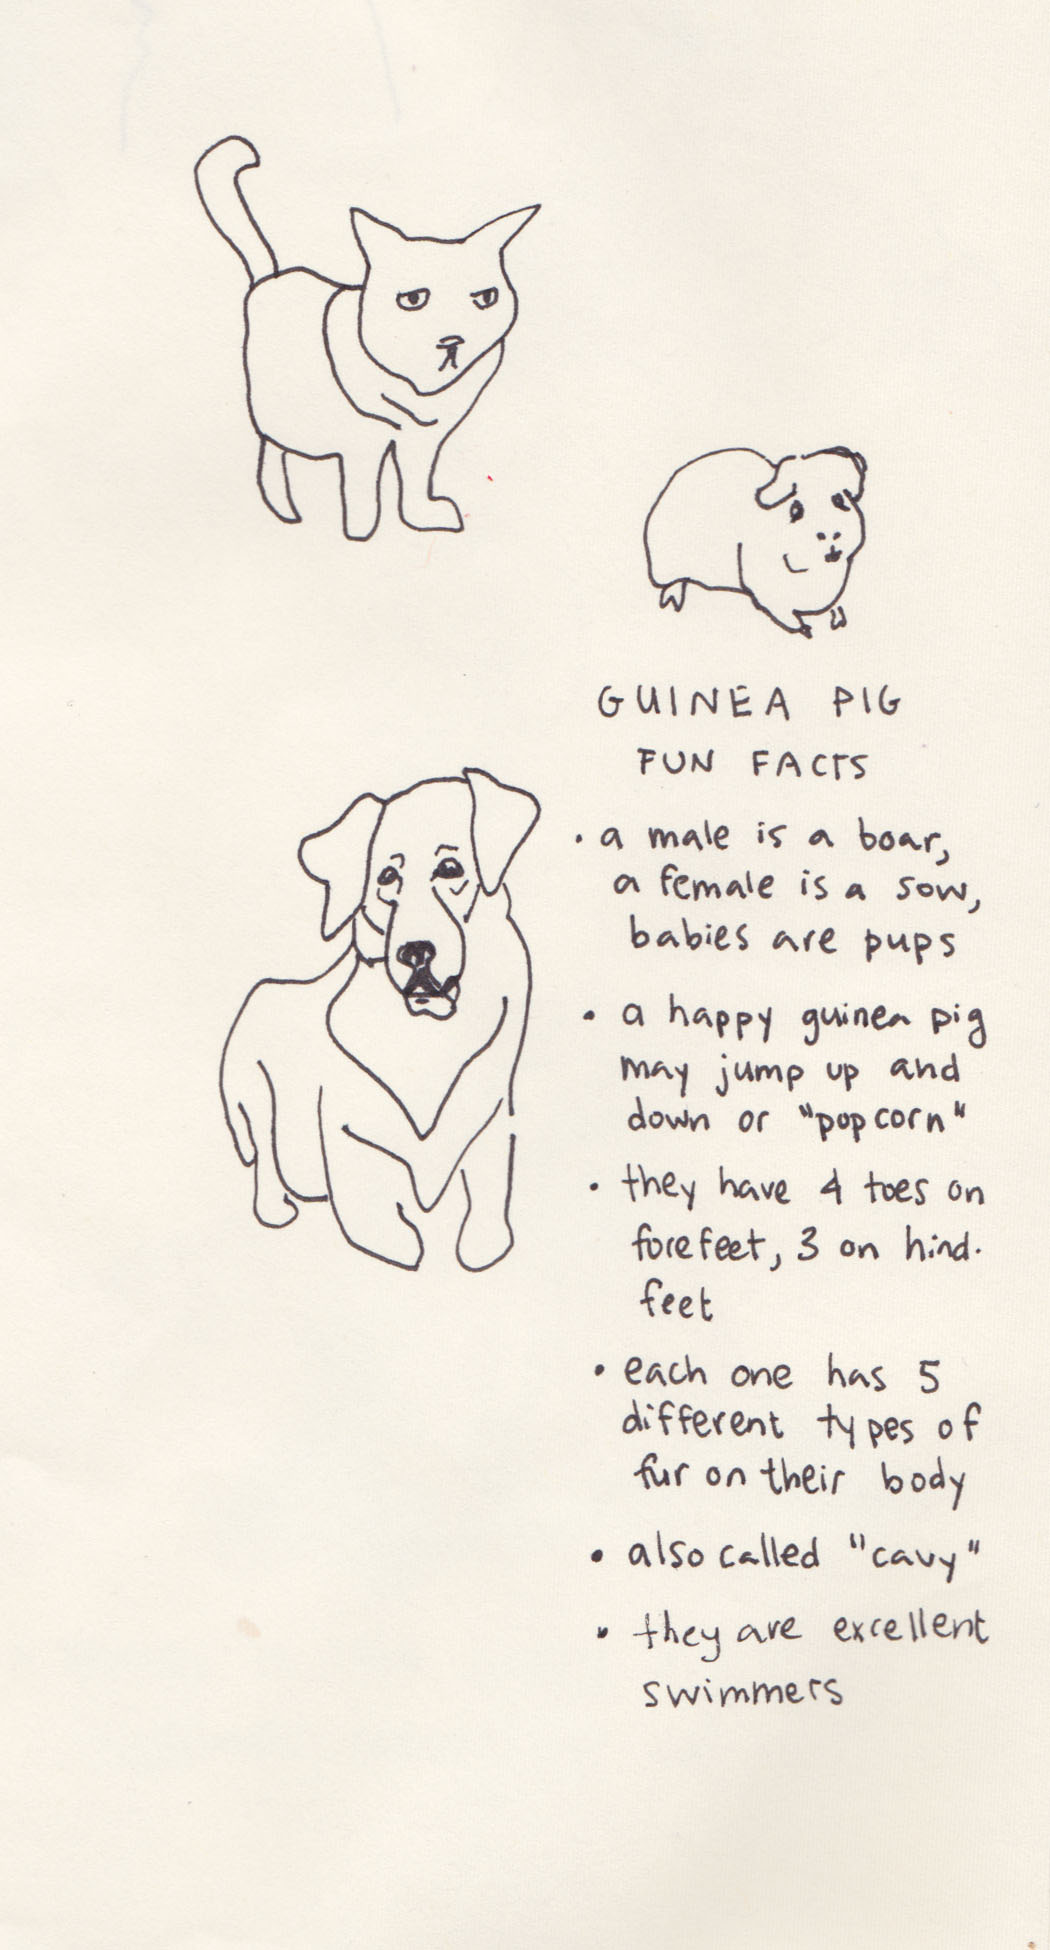 guinea pig facts.jpg